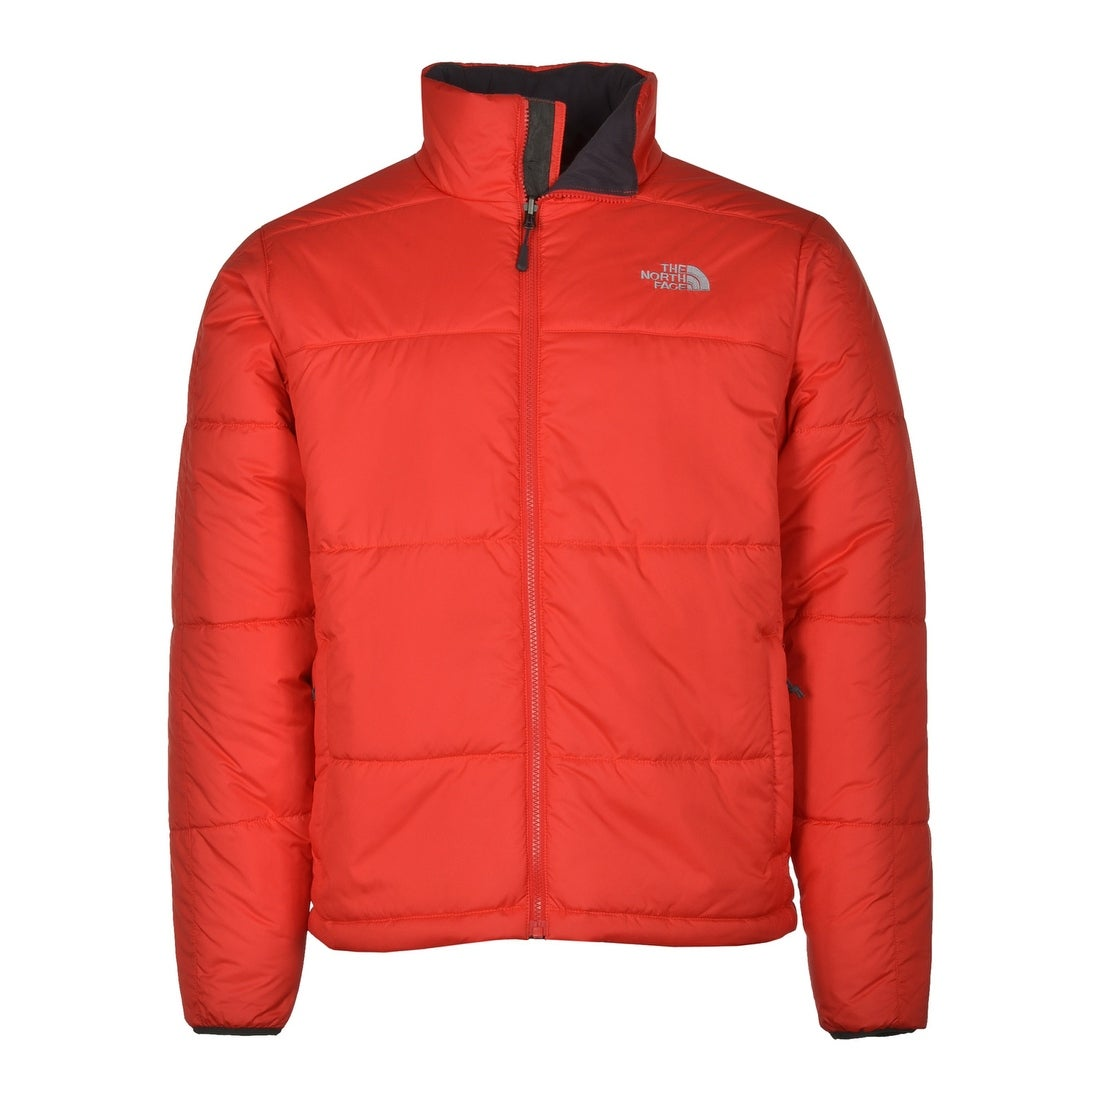 d08b3df2161a3 Shop The North Face Sangfroid Insulated Puffer Jacket Bright Red Full  Zippered - Free Shipping Today - Overstock - 14021591